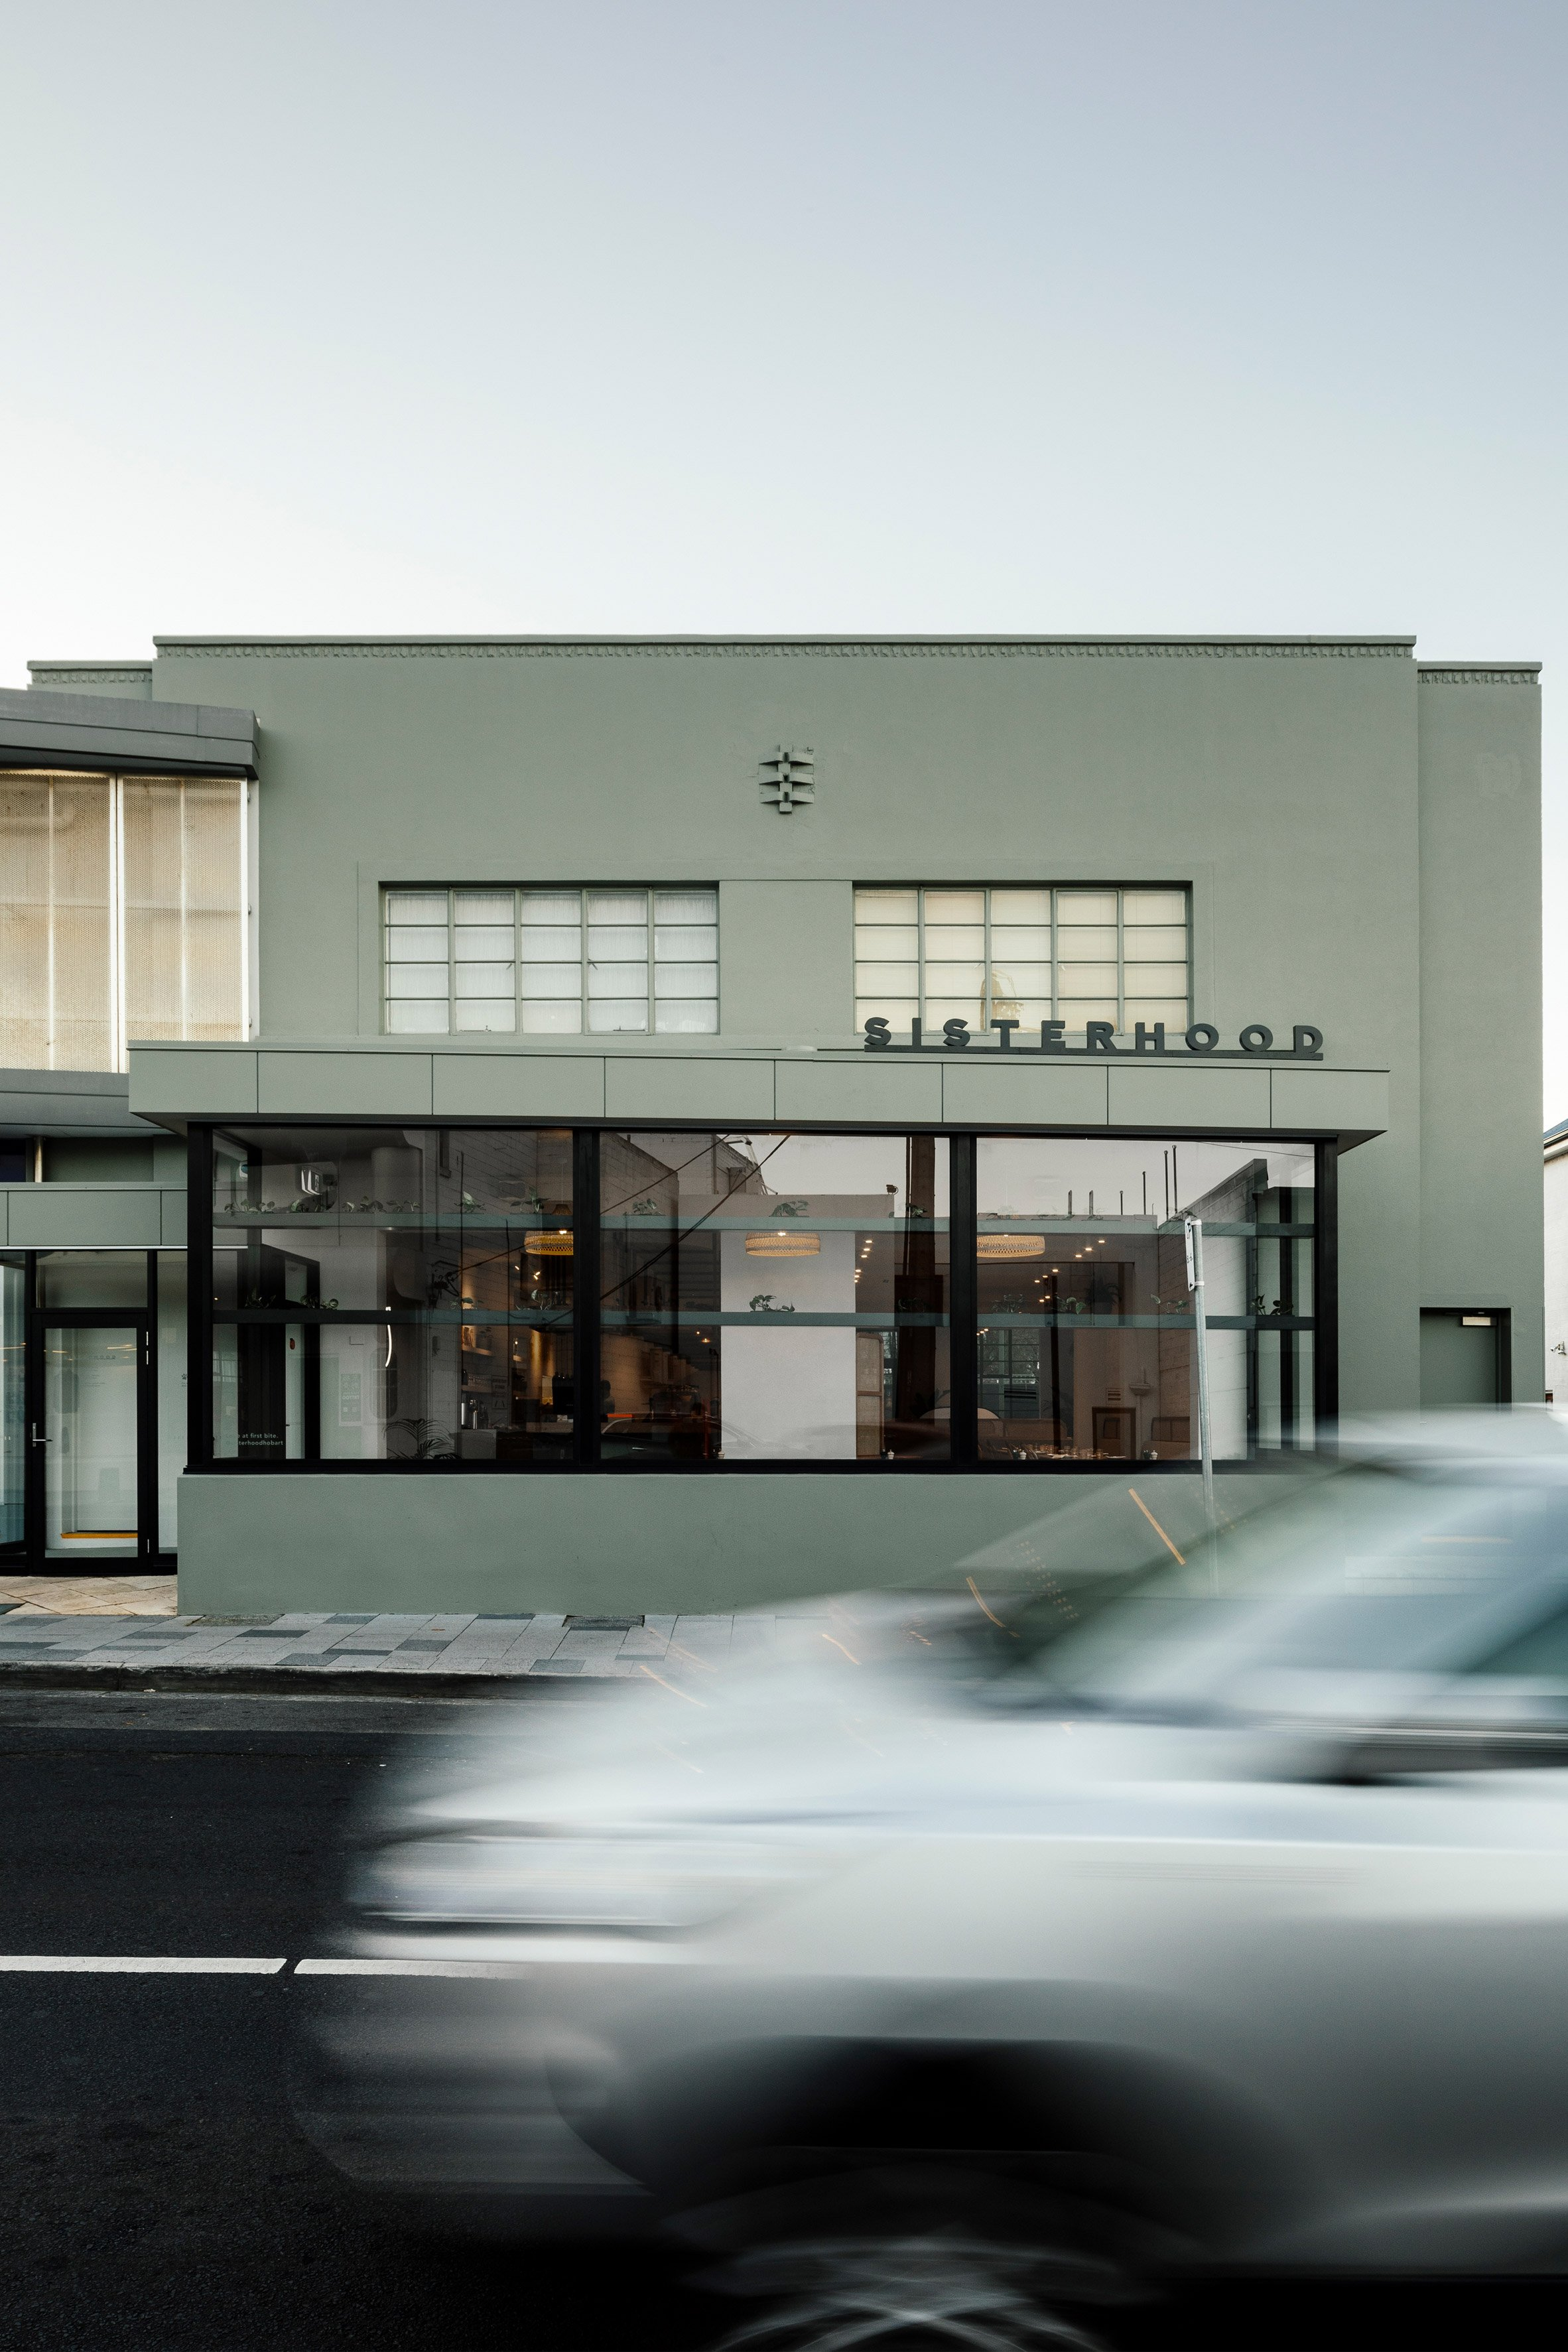 Sisterhood restaurant in Tasmania, designed by Biasol